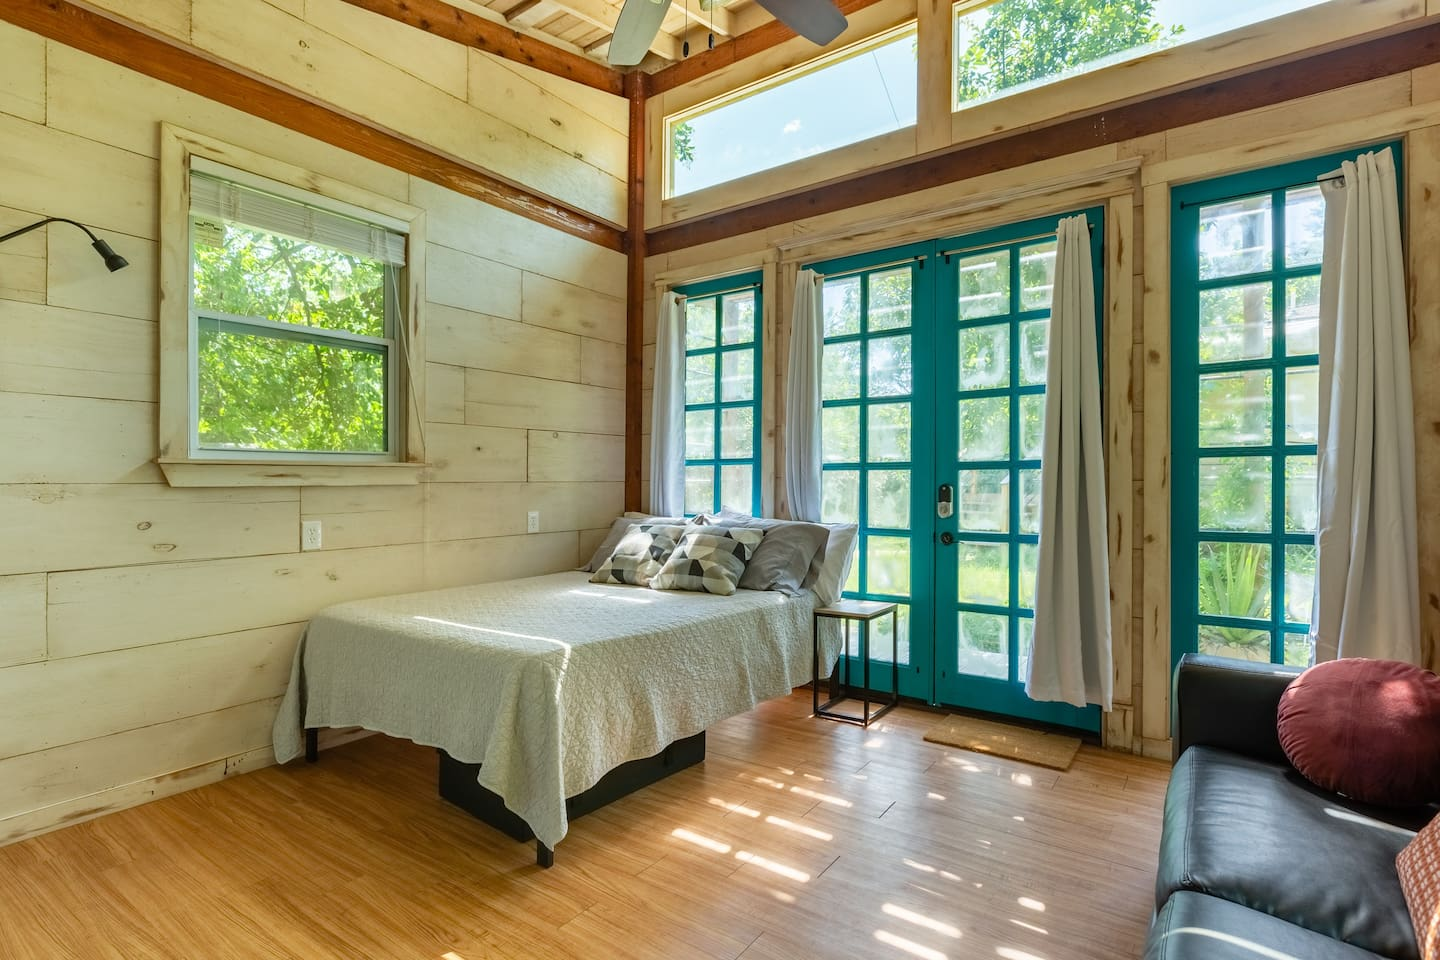 Spacious single room studio that's quiet and comfortable, with a lot of natural light, but also blackout curtains for when you need some more zzz's.